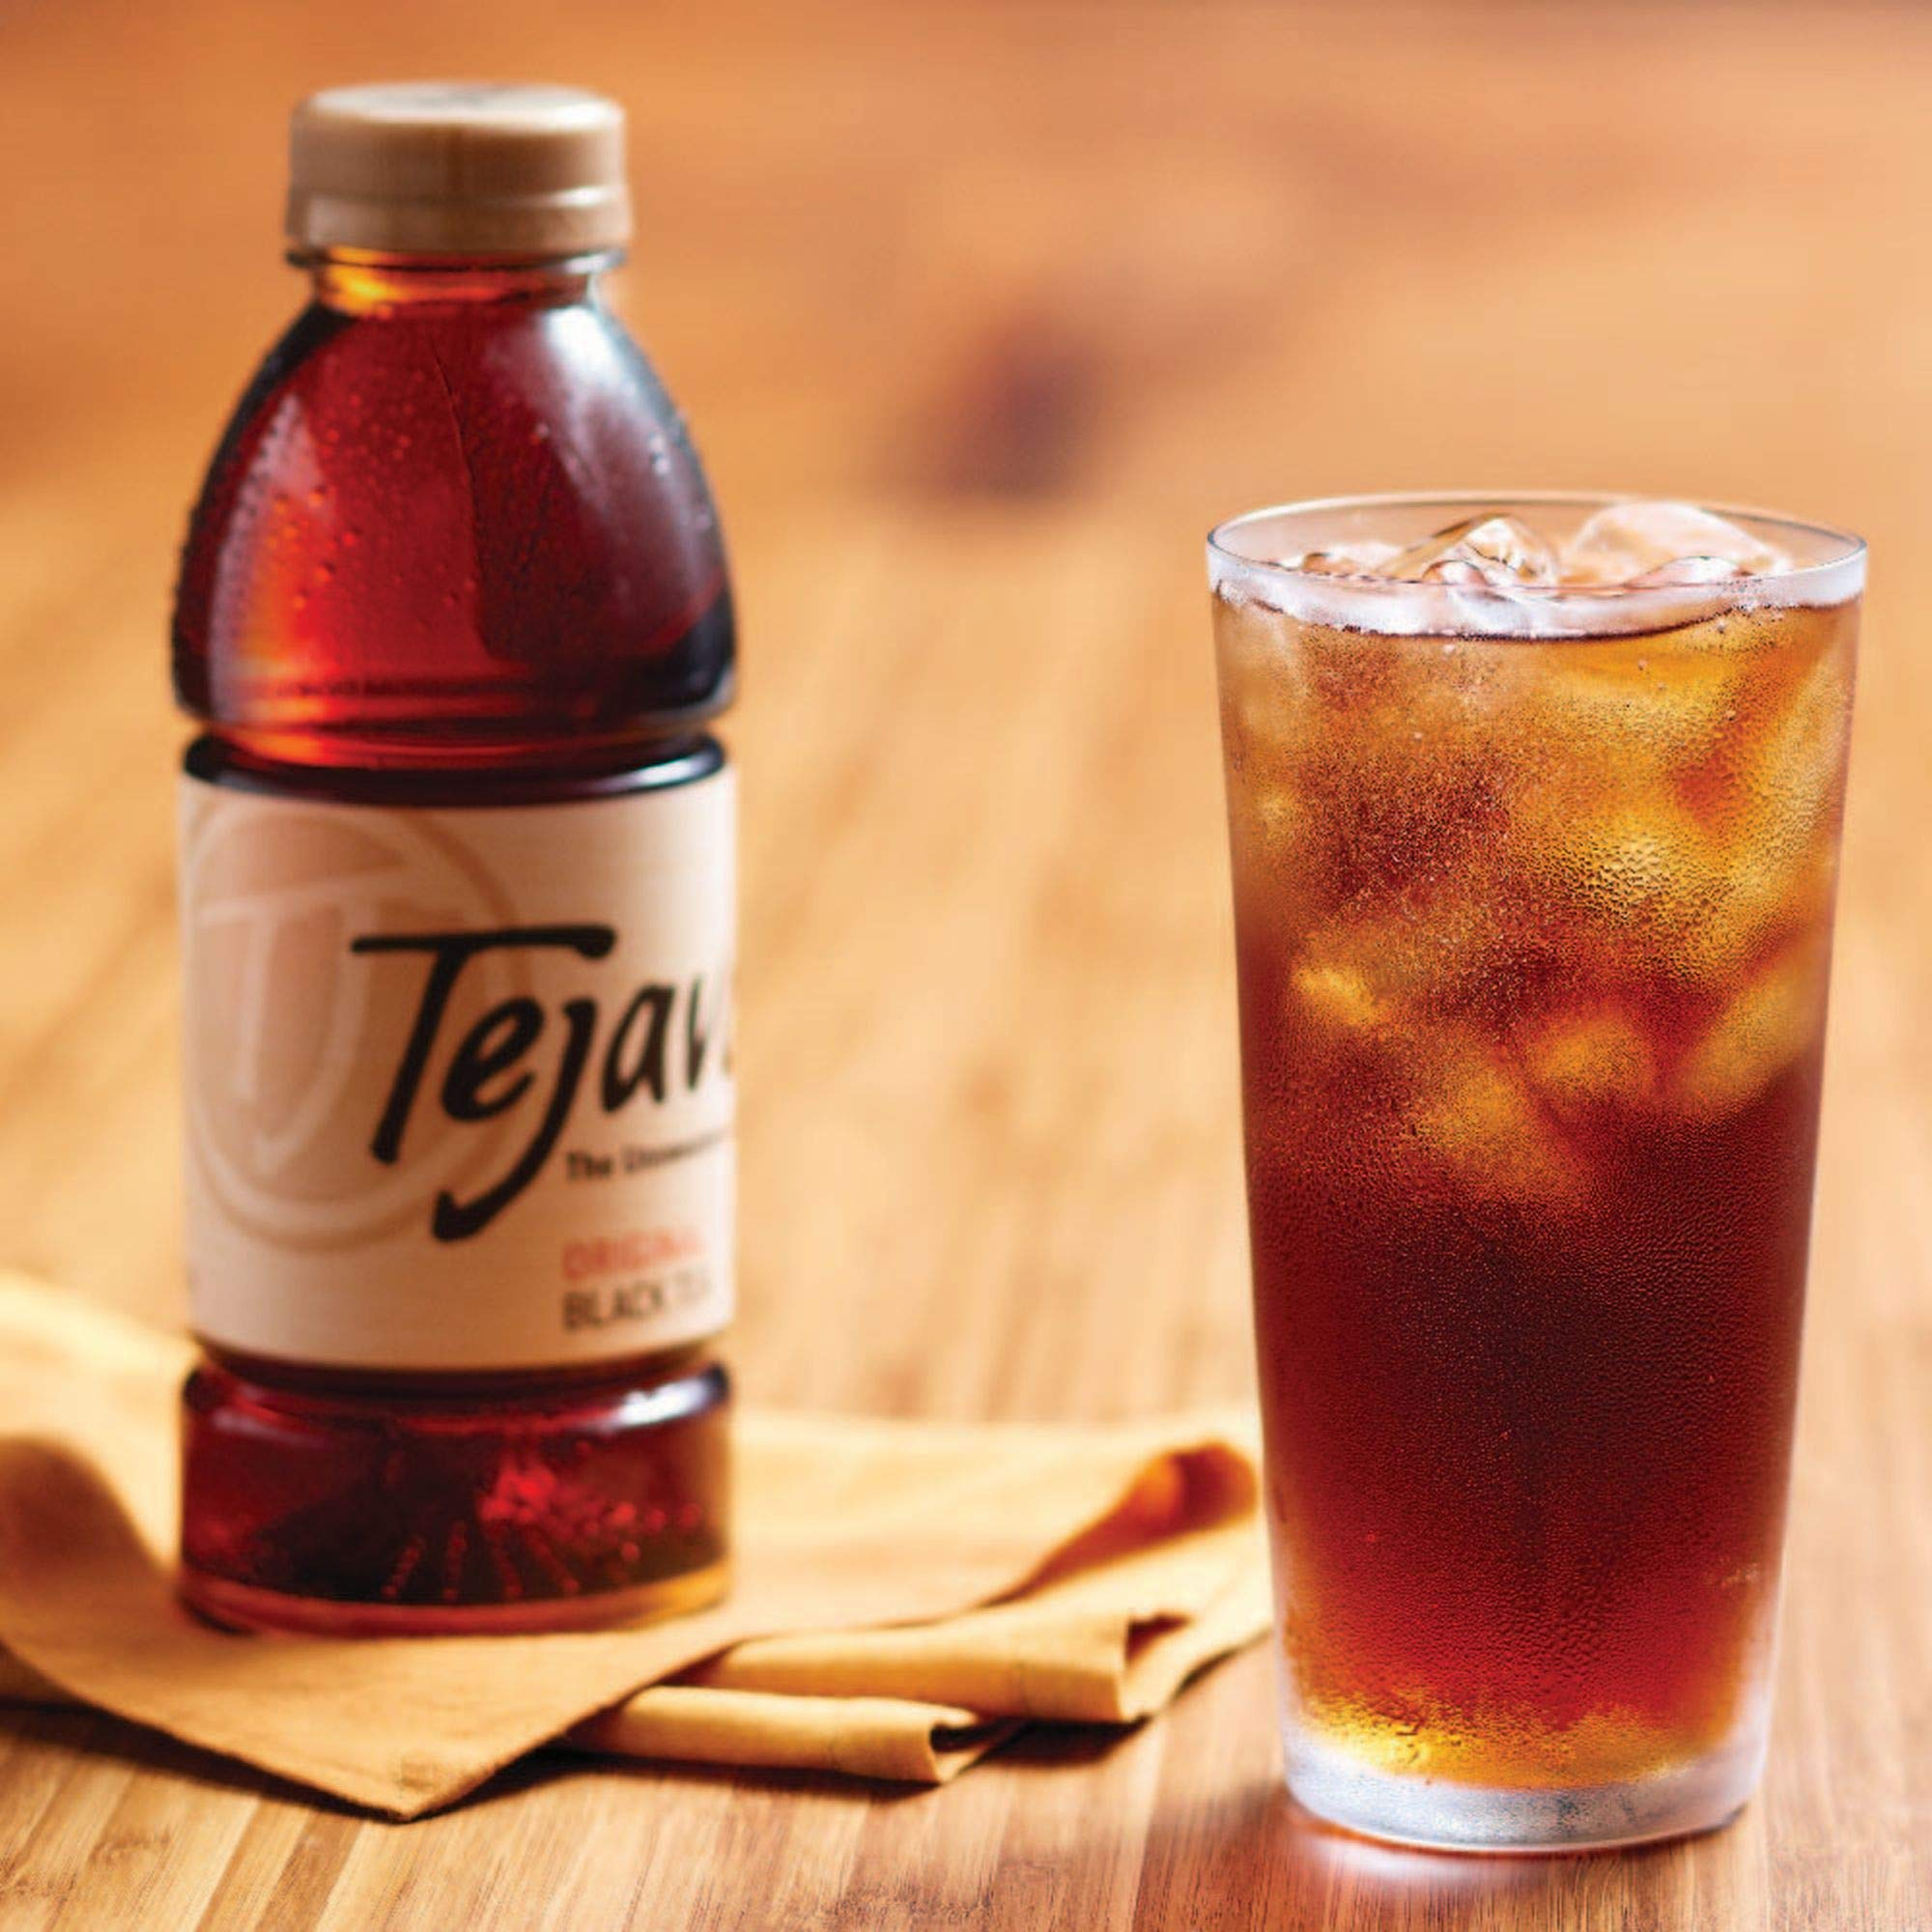 Tejava Original Unsweetened Black Iced Tea, 16.9 oz PET Bottles, Award Winning, Non-GMO-Verified, from Rainforest Alliance-Certified farms (12 Pack) by Tejava (Image #5)